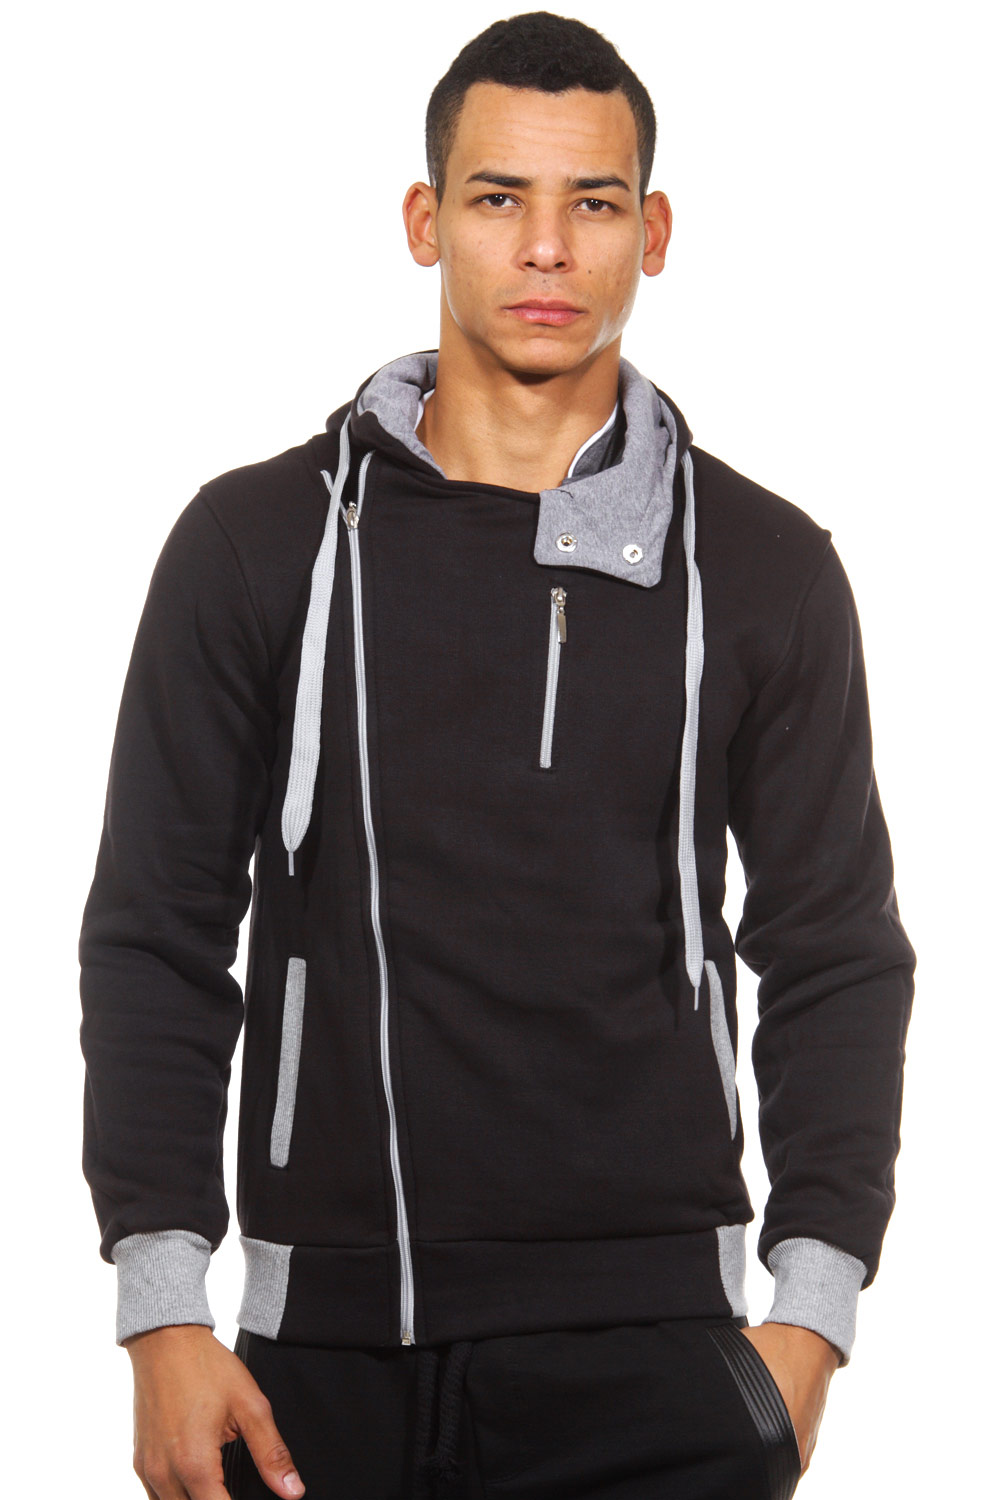 FIYASKO hoodie sweat jacket slim fit at oboy.com